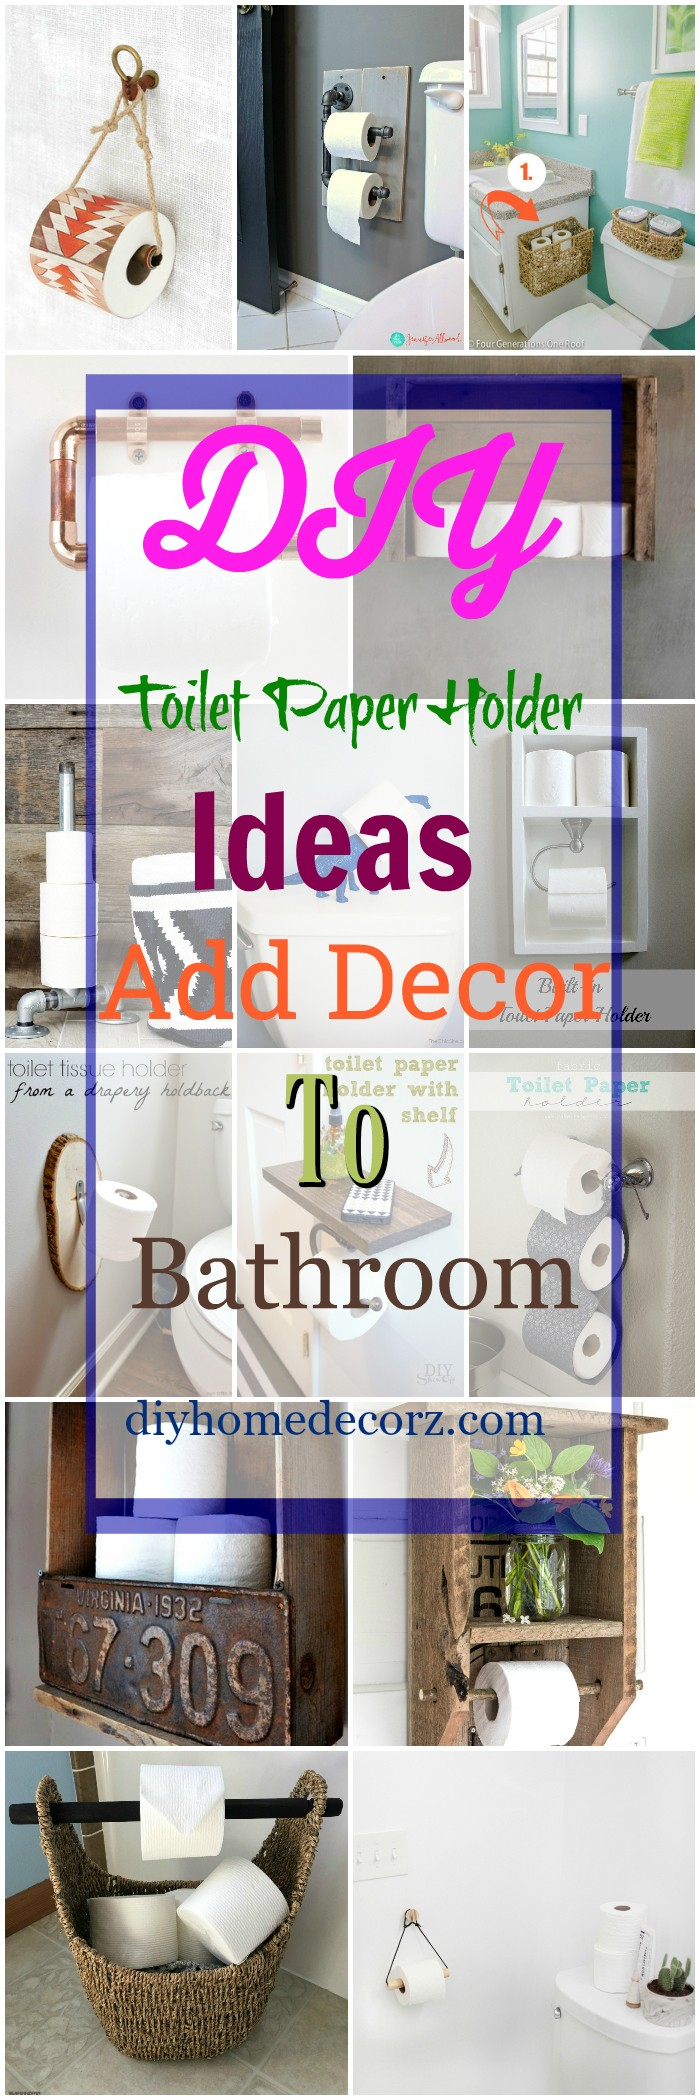 DIY Toilet Paper Holder Ideas Add Decor To Bathroom DIY Toilet Paper Holder Ideas   Add Decor To Bathroom